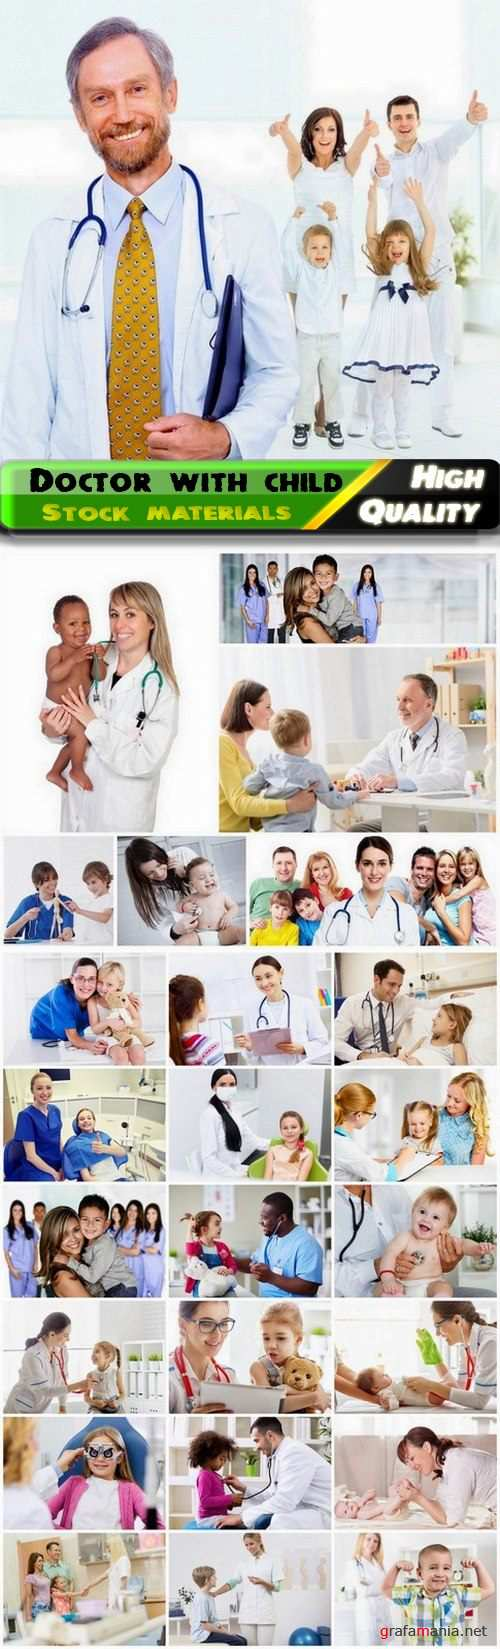 Smiling doctor with child and nurse with happy kid - 25 HQ Jpg